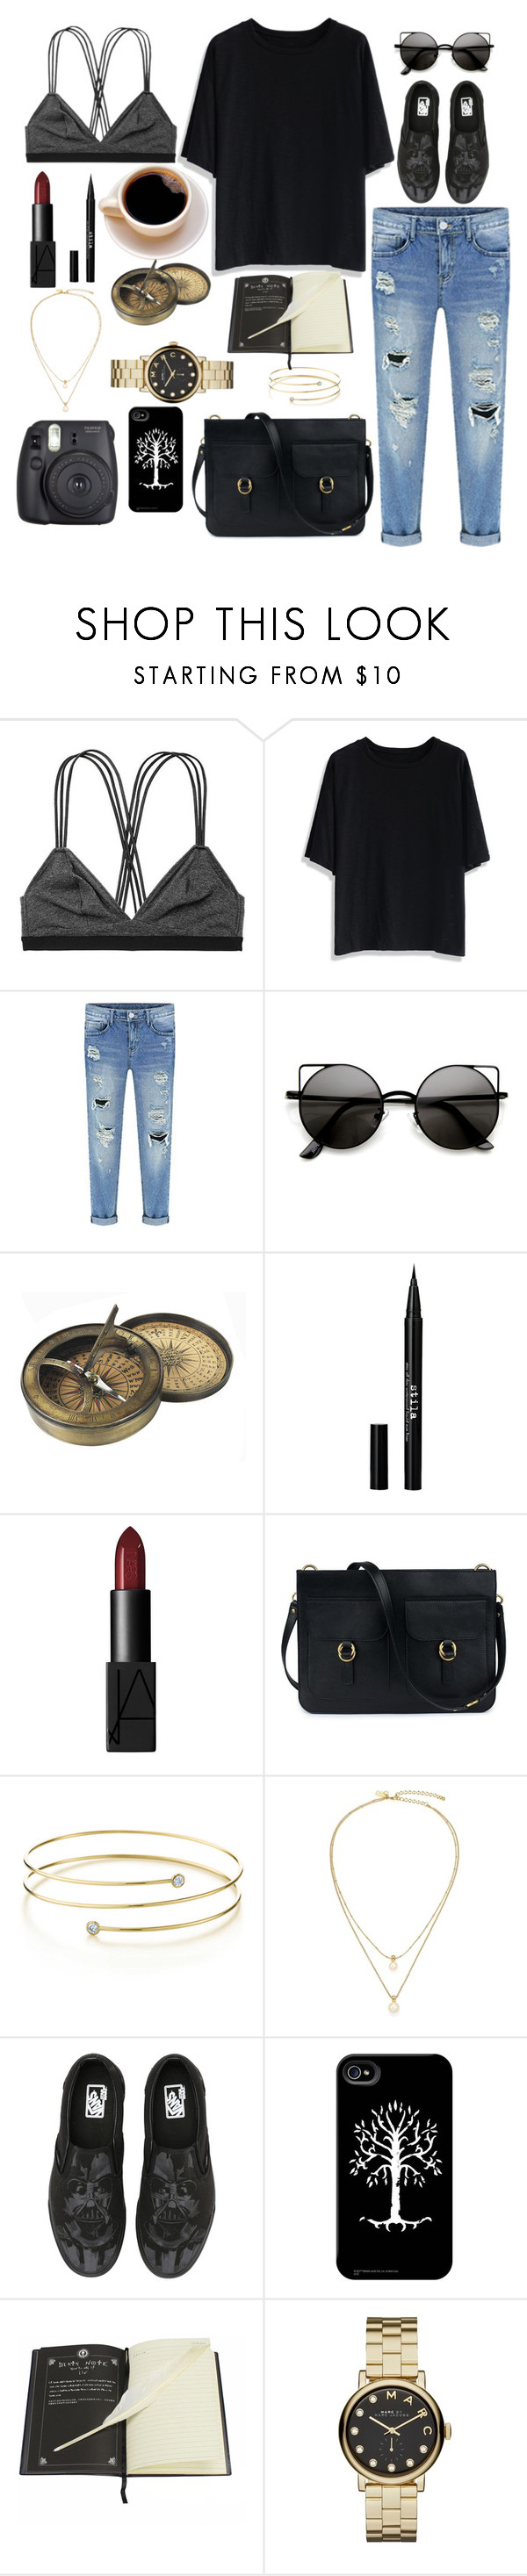 """Hipster"" by lovelydgessy ❤ liked on Polyvore featuring Victoria's Secret, Chicwish, Stila, NARS Cosmetics, Elsa Peretti, Kate Spade, Vans, Marc by Marc Jacobs and Fuji"